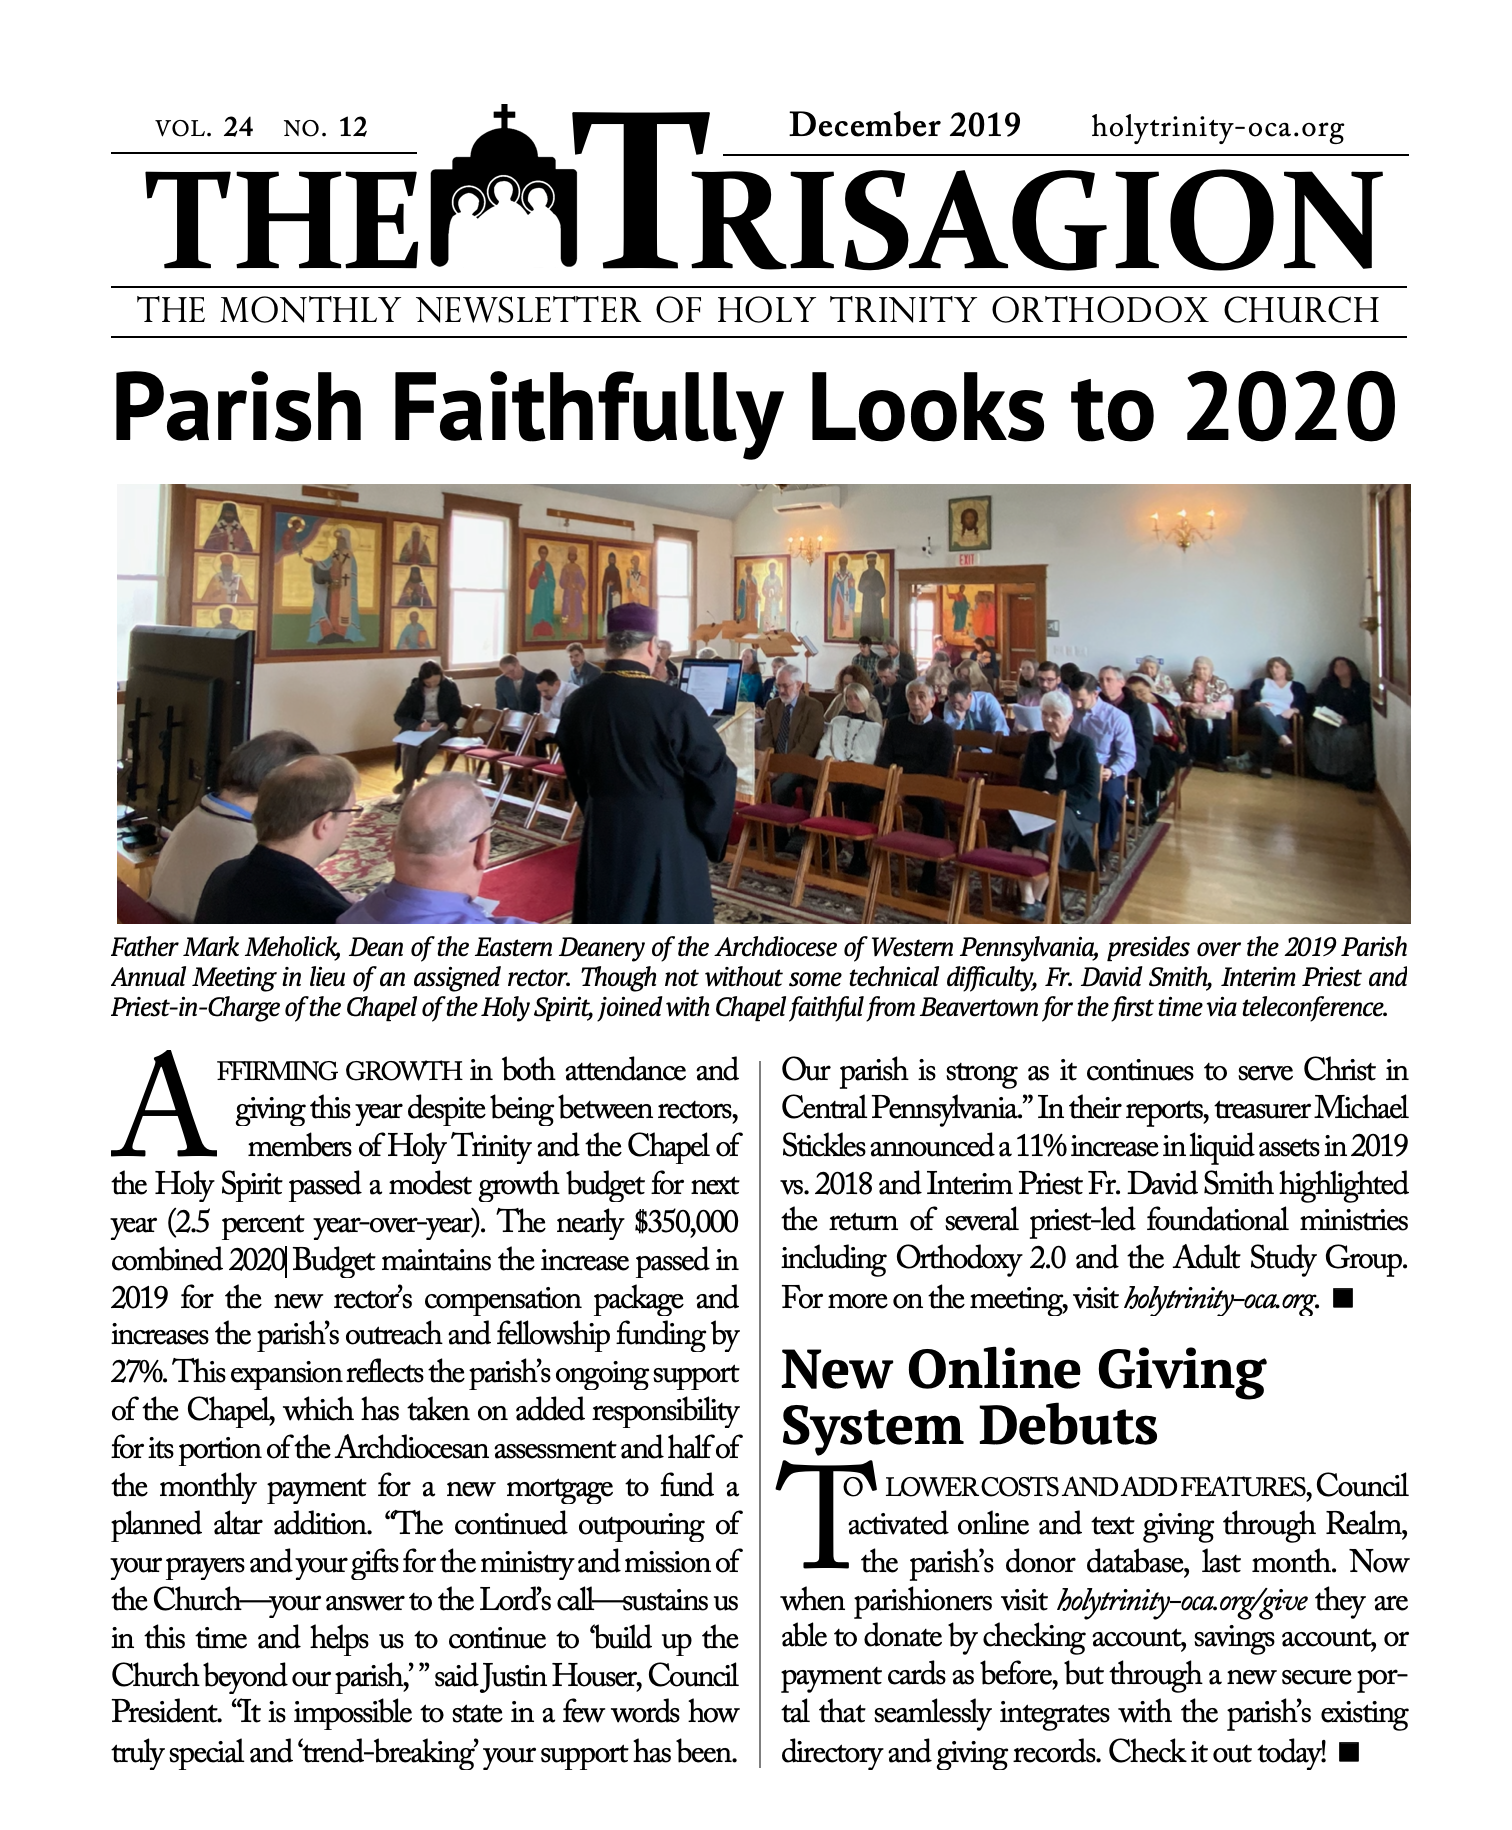 Click here to view the December 2019 issue.